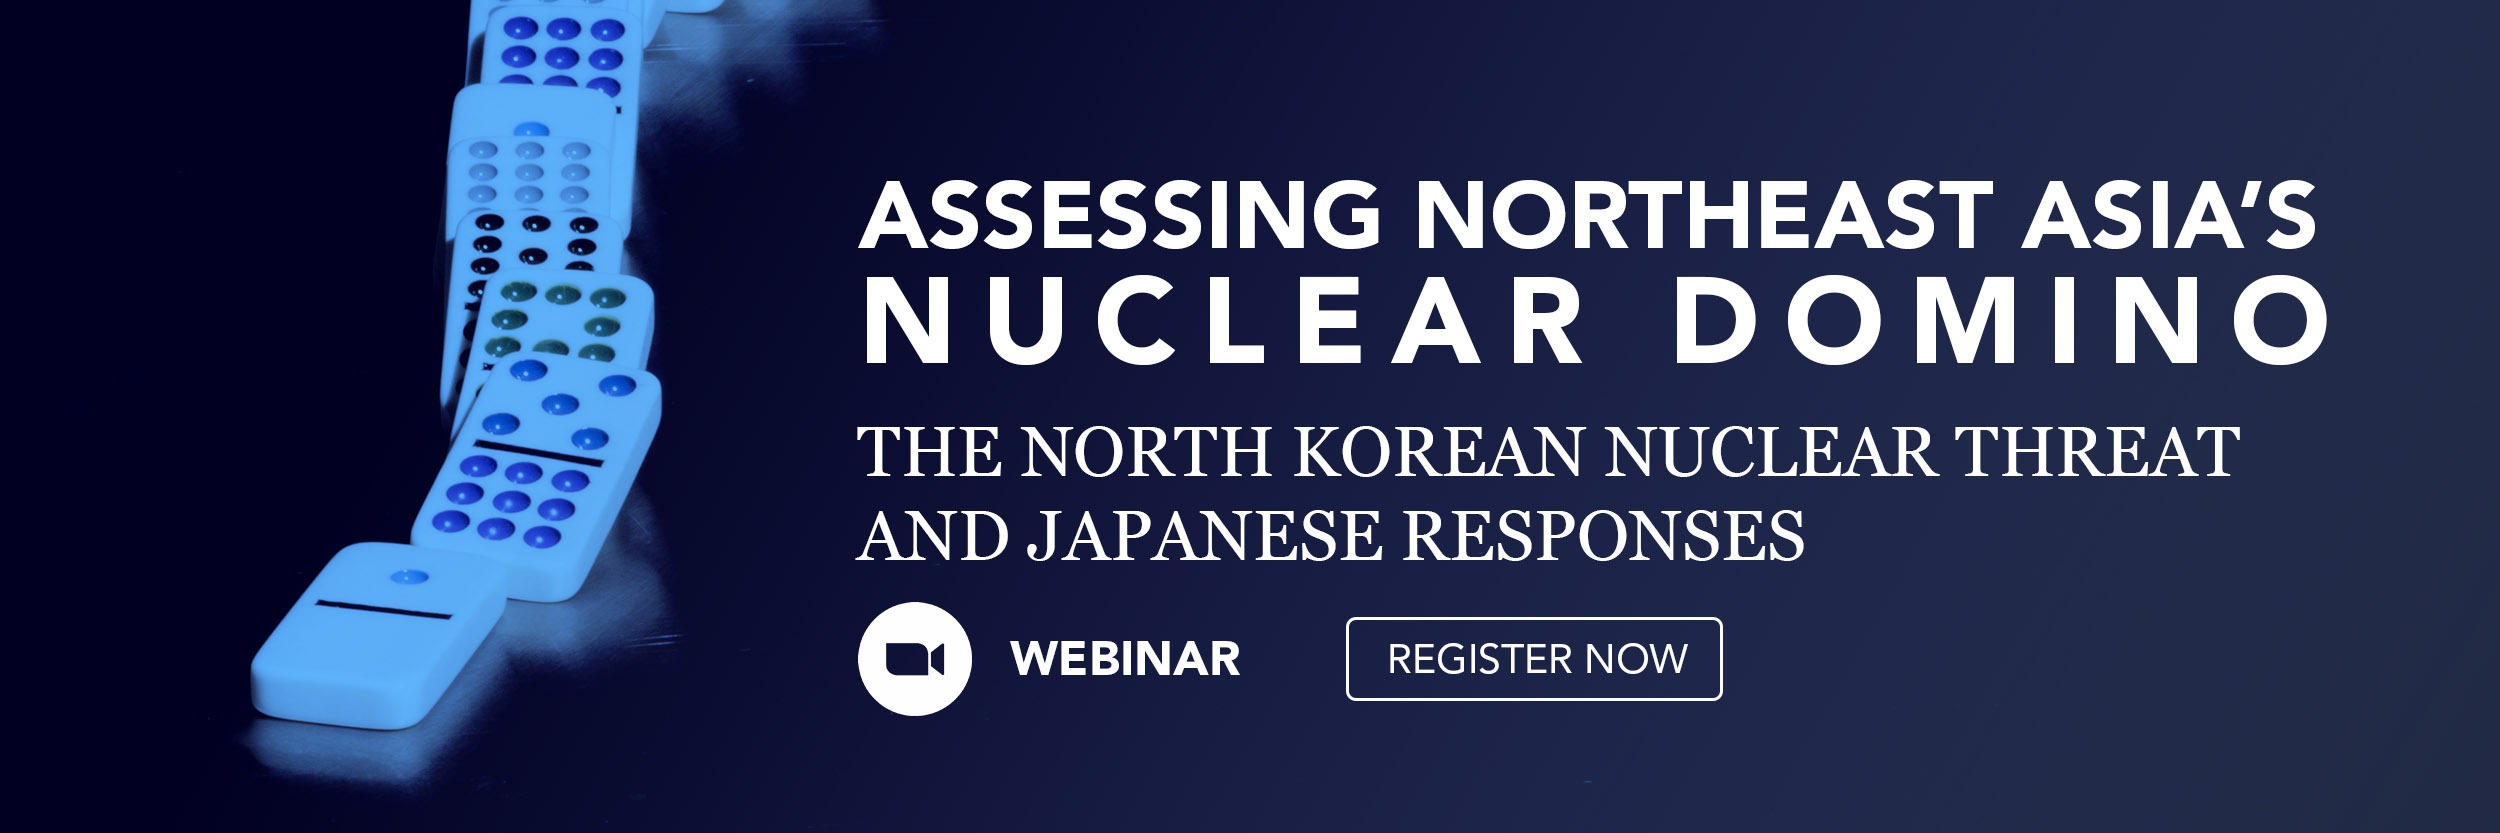 Assessing Northeast Asia Nuclear Domino: Japanese Responses